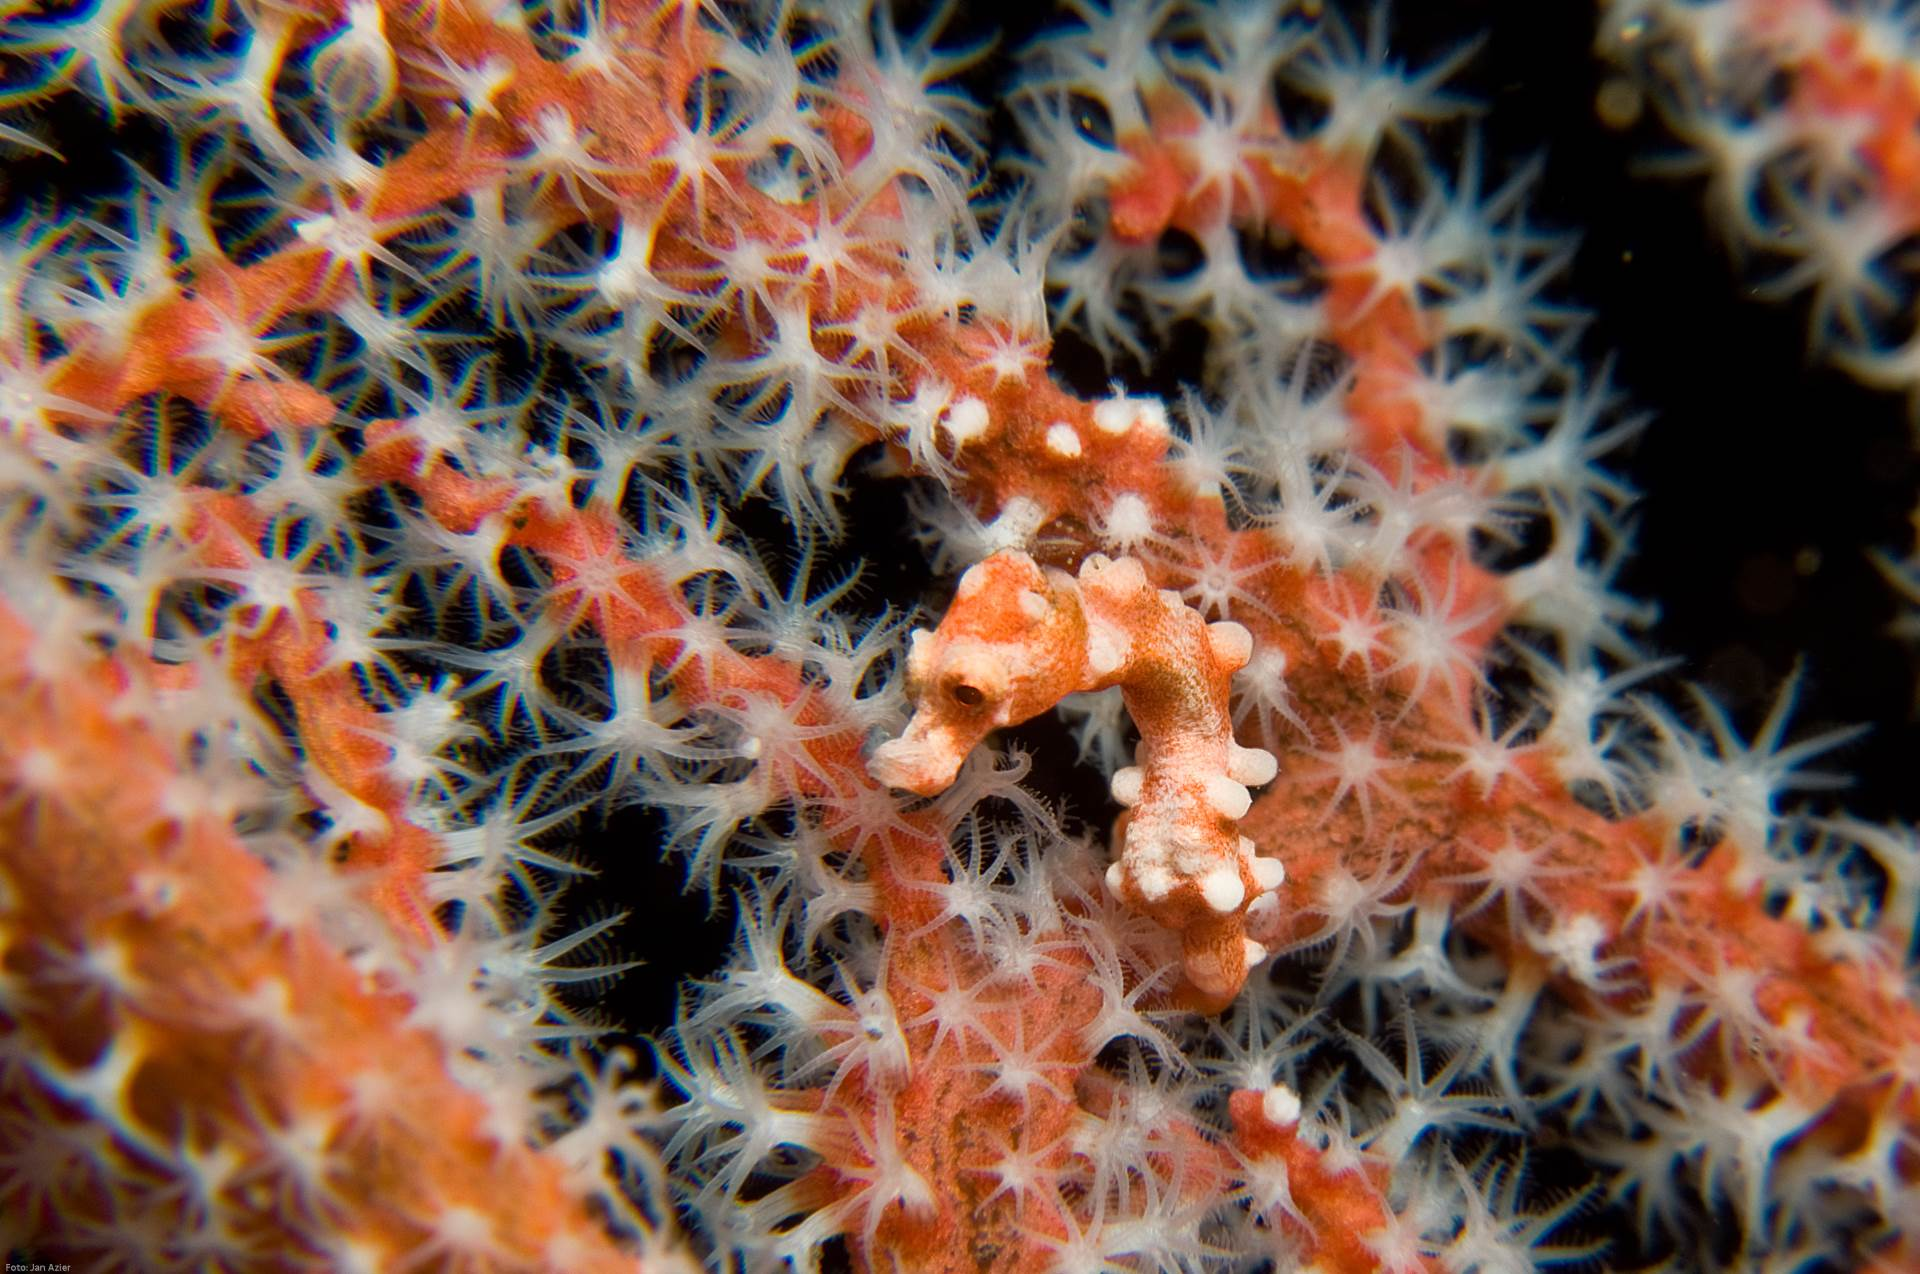 A Denise's pygmy seahorse (H. denise) spotted in Bali. Photo by Jan Azier/Guylian Seahorses of the World